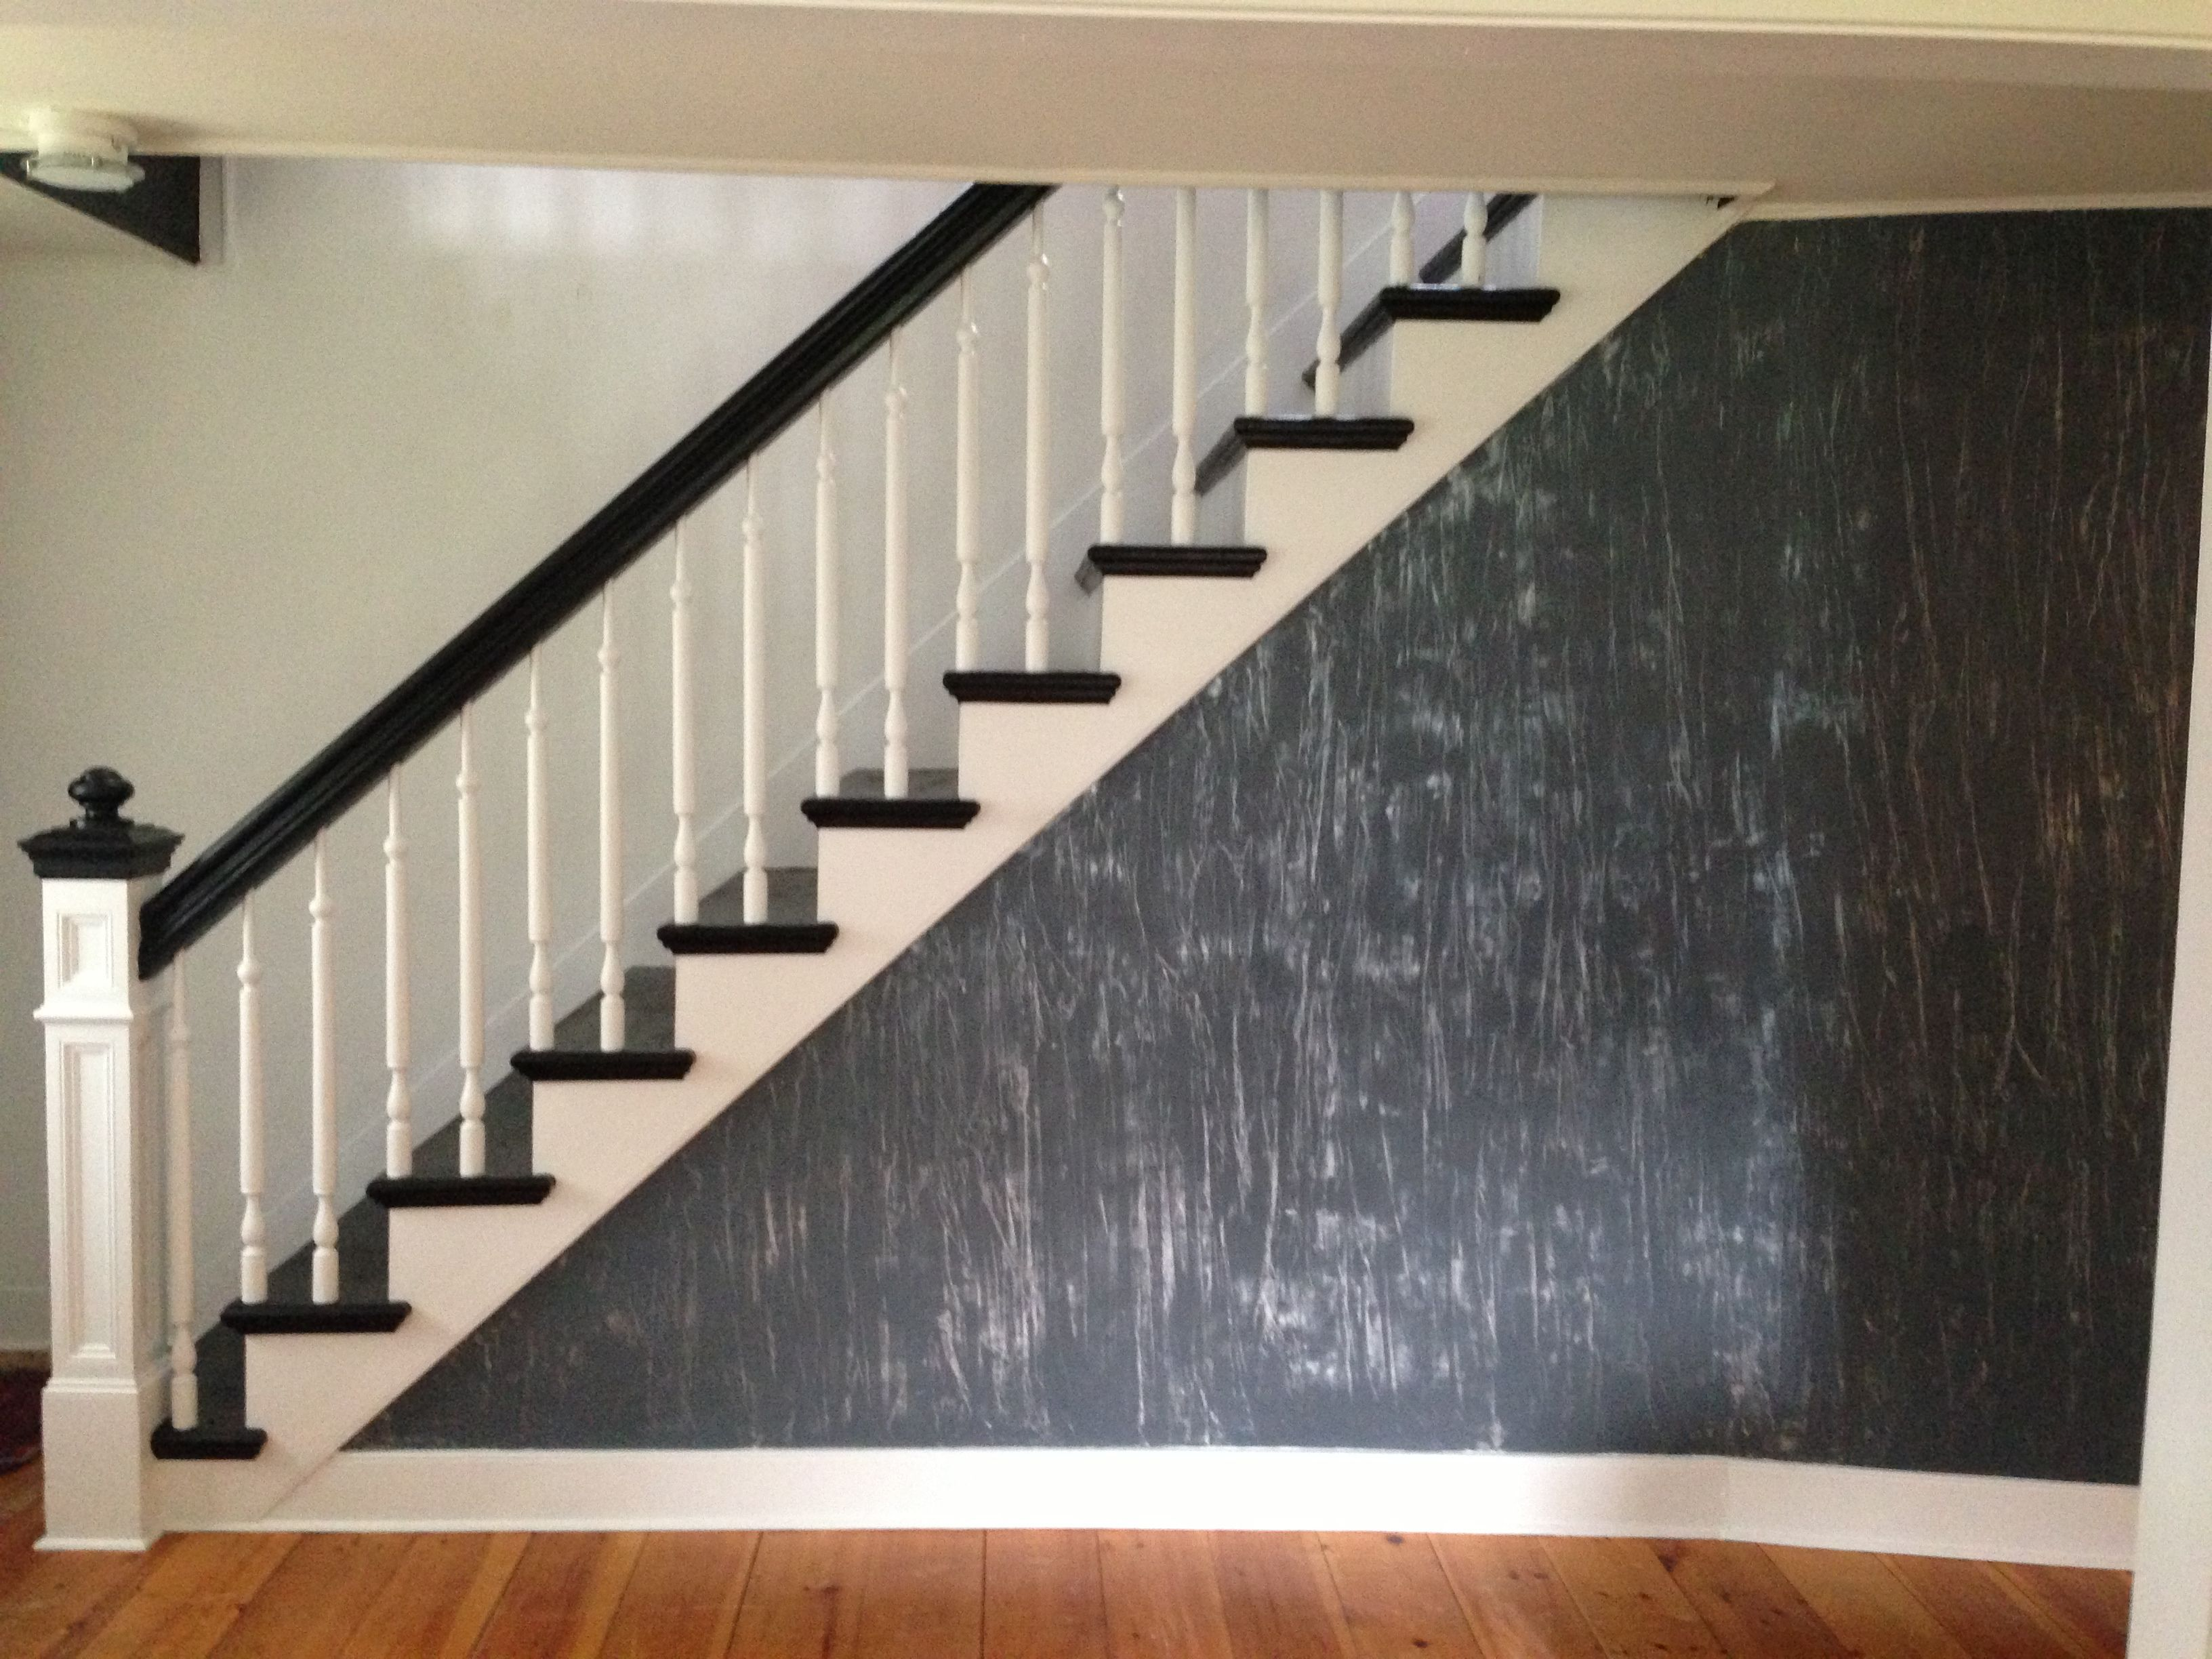 Embedded Tissue Paper With Troweled Plaster Finish To Wall, Stair Treads  And Railing Painted Black